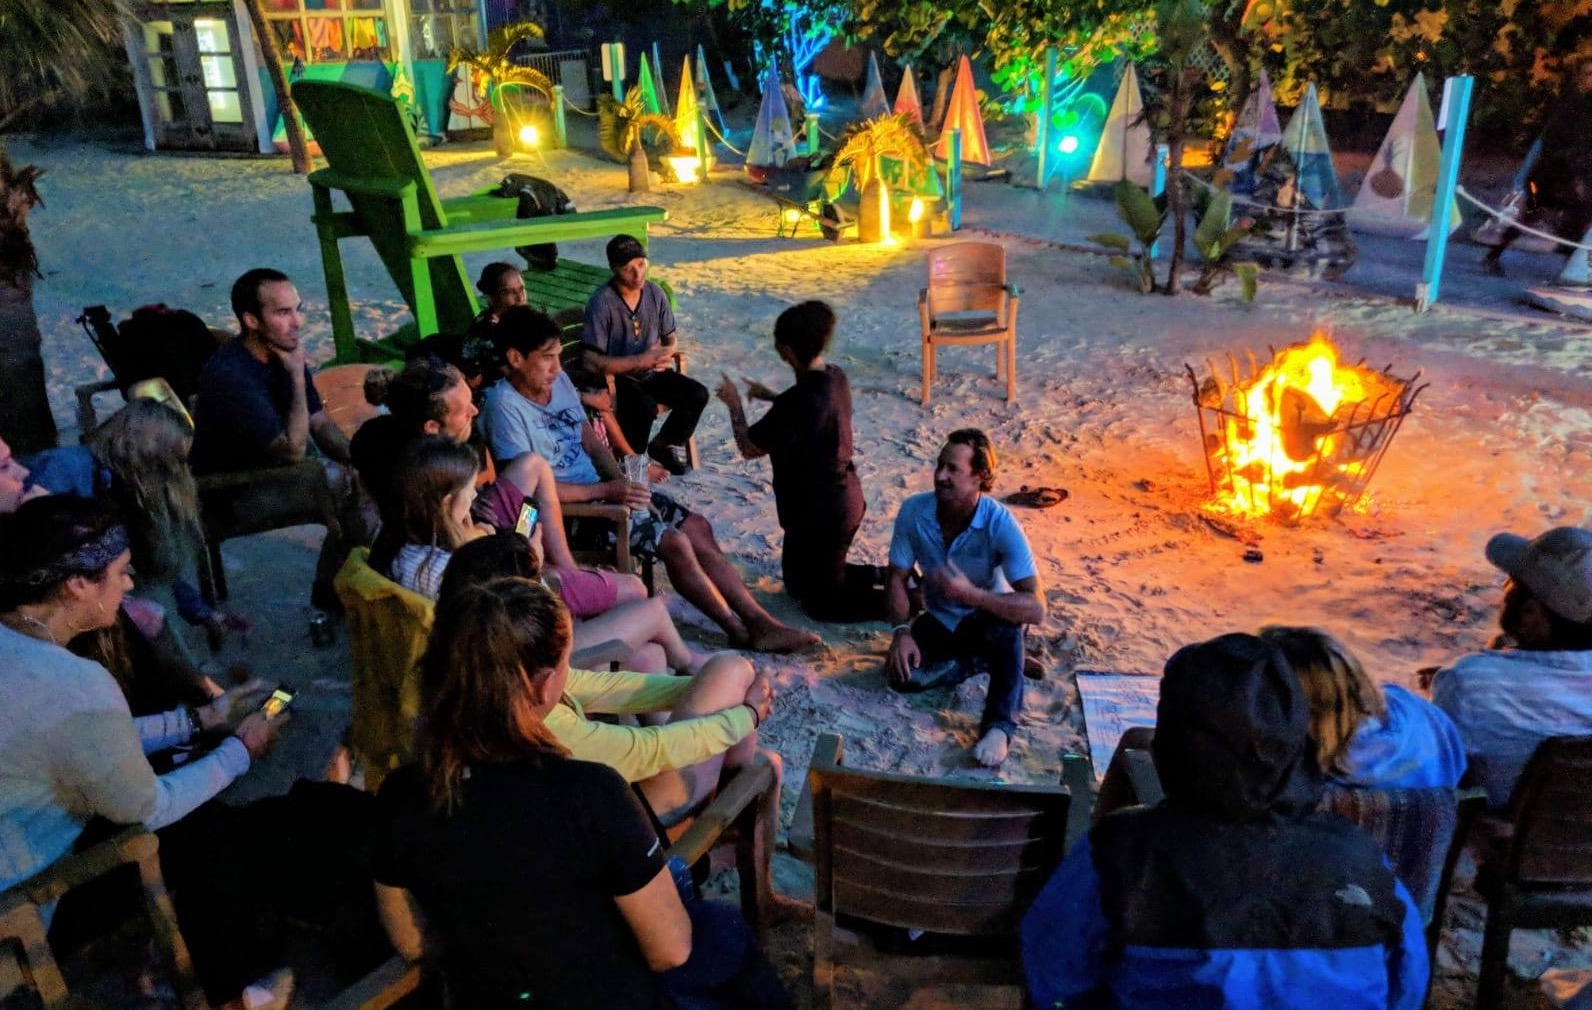 Co-Living &Co-Creating - We know that so often, at these kinds of events, it's the discussions people have in between workshops or over dinner where the magic happens. So all our events are residential - giving everyone the time & space to dive into deep conversations & connect to the community.